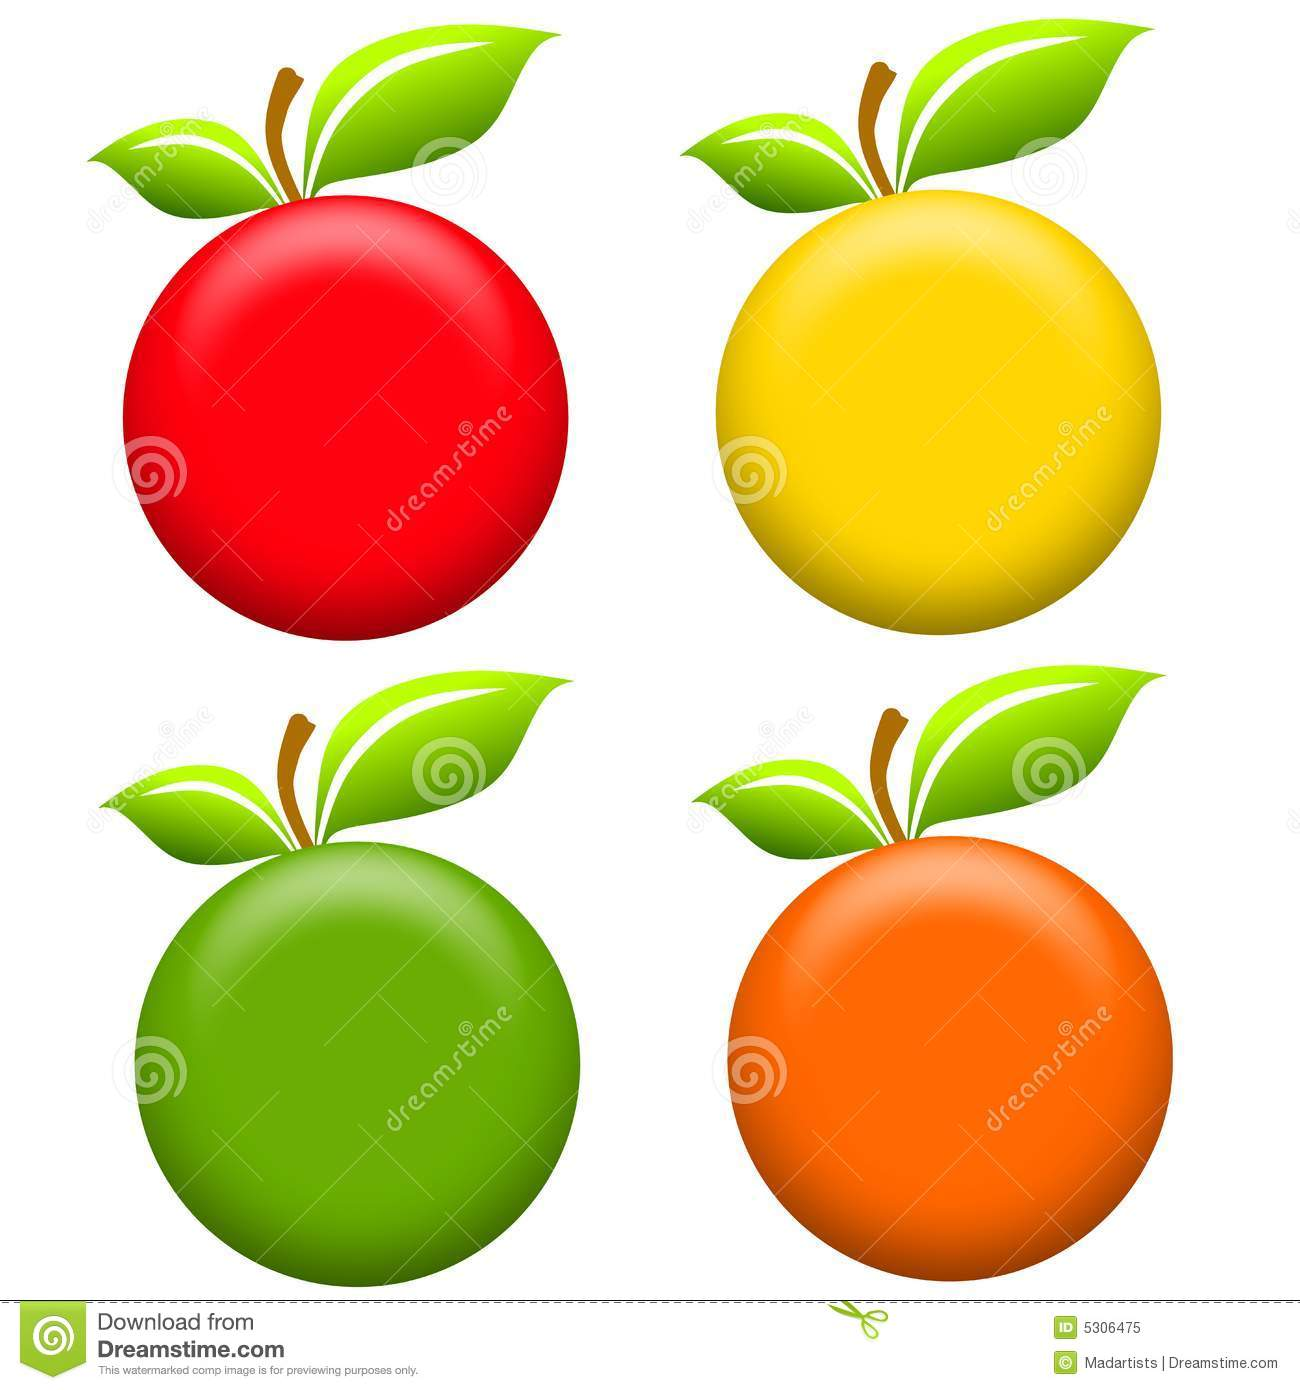 4 objects clipart clipart library library 4 objects clipart 2 » Clipart Station clipart library library